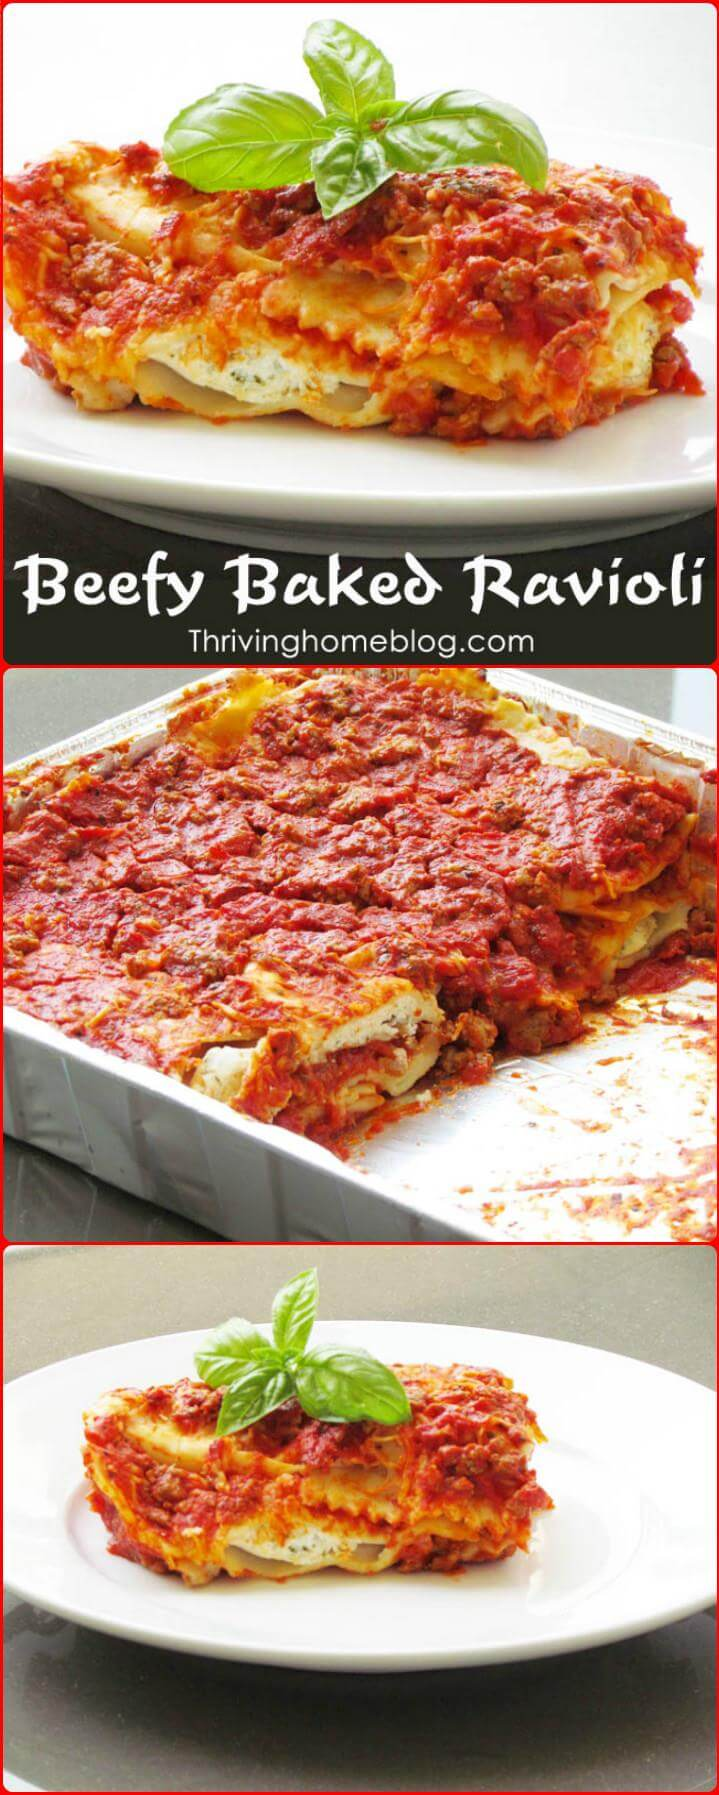 delicious beefy baked ravioli